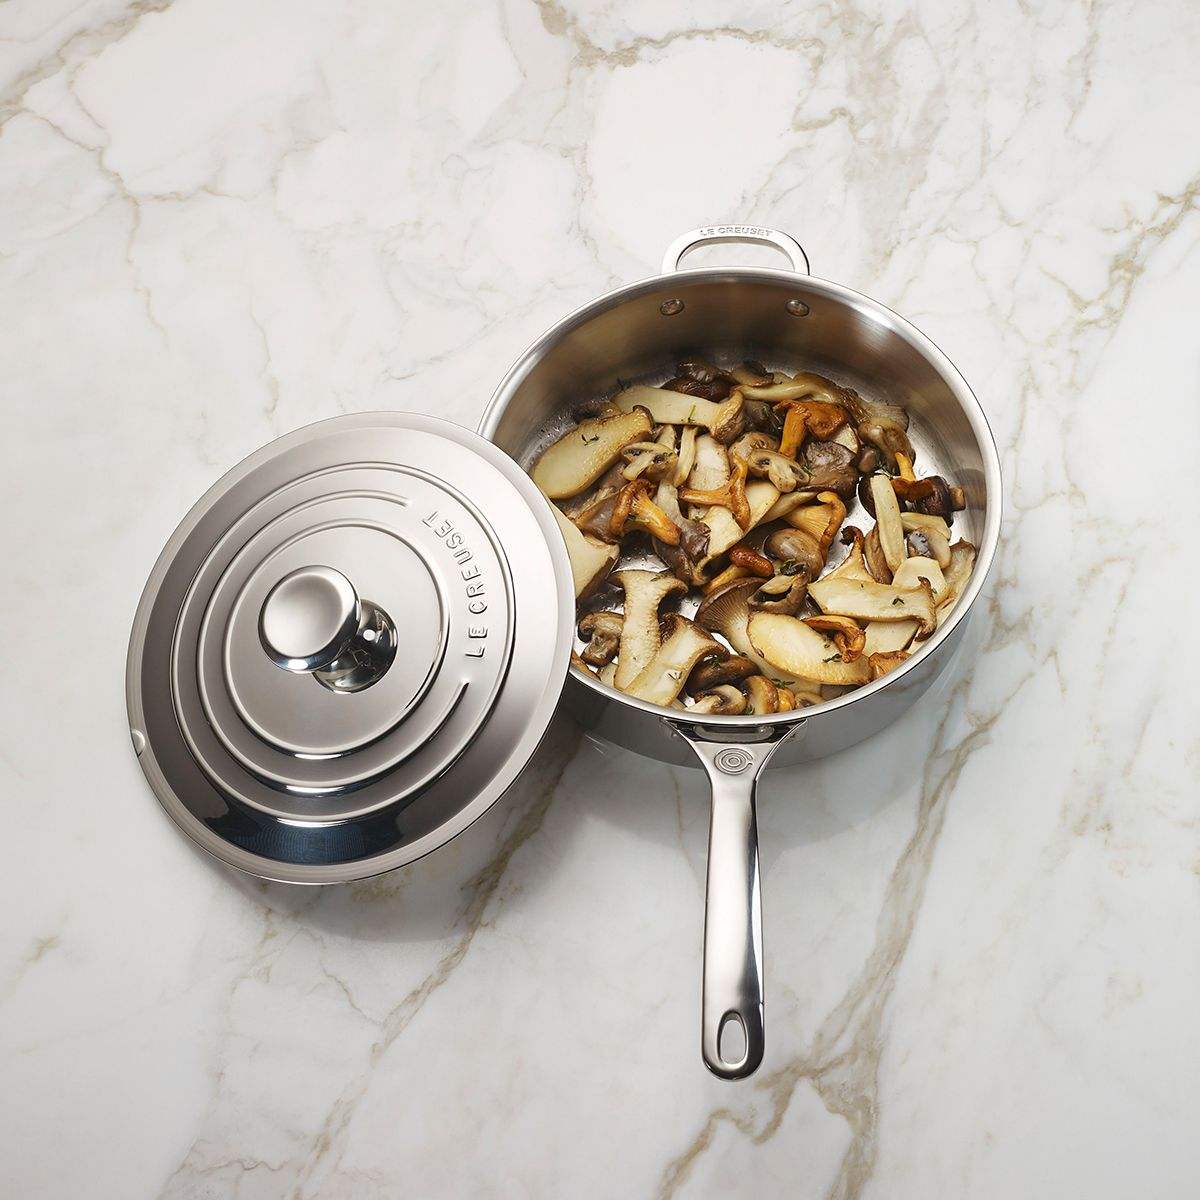 Master The Art Of Cooking With Stainless Steel